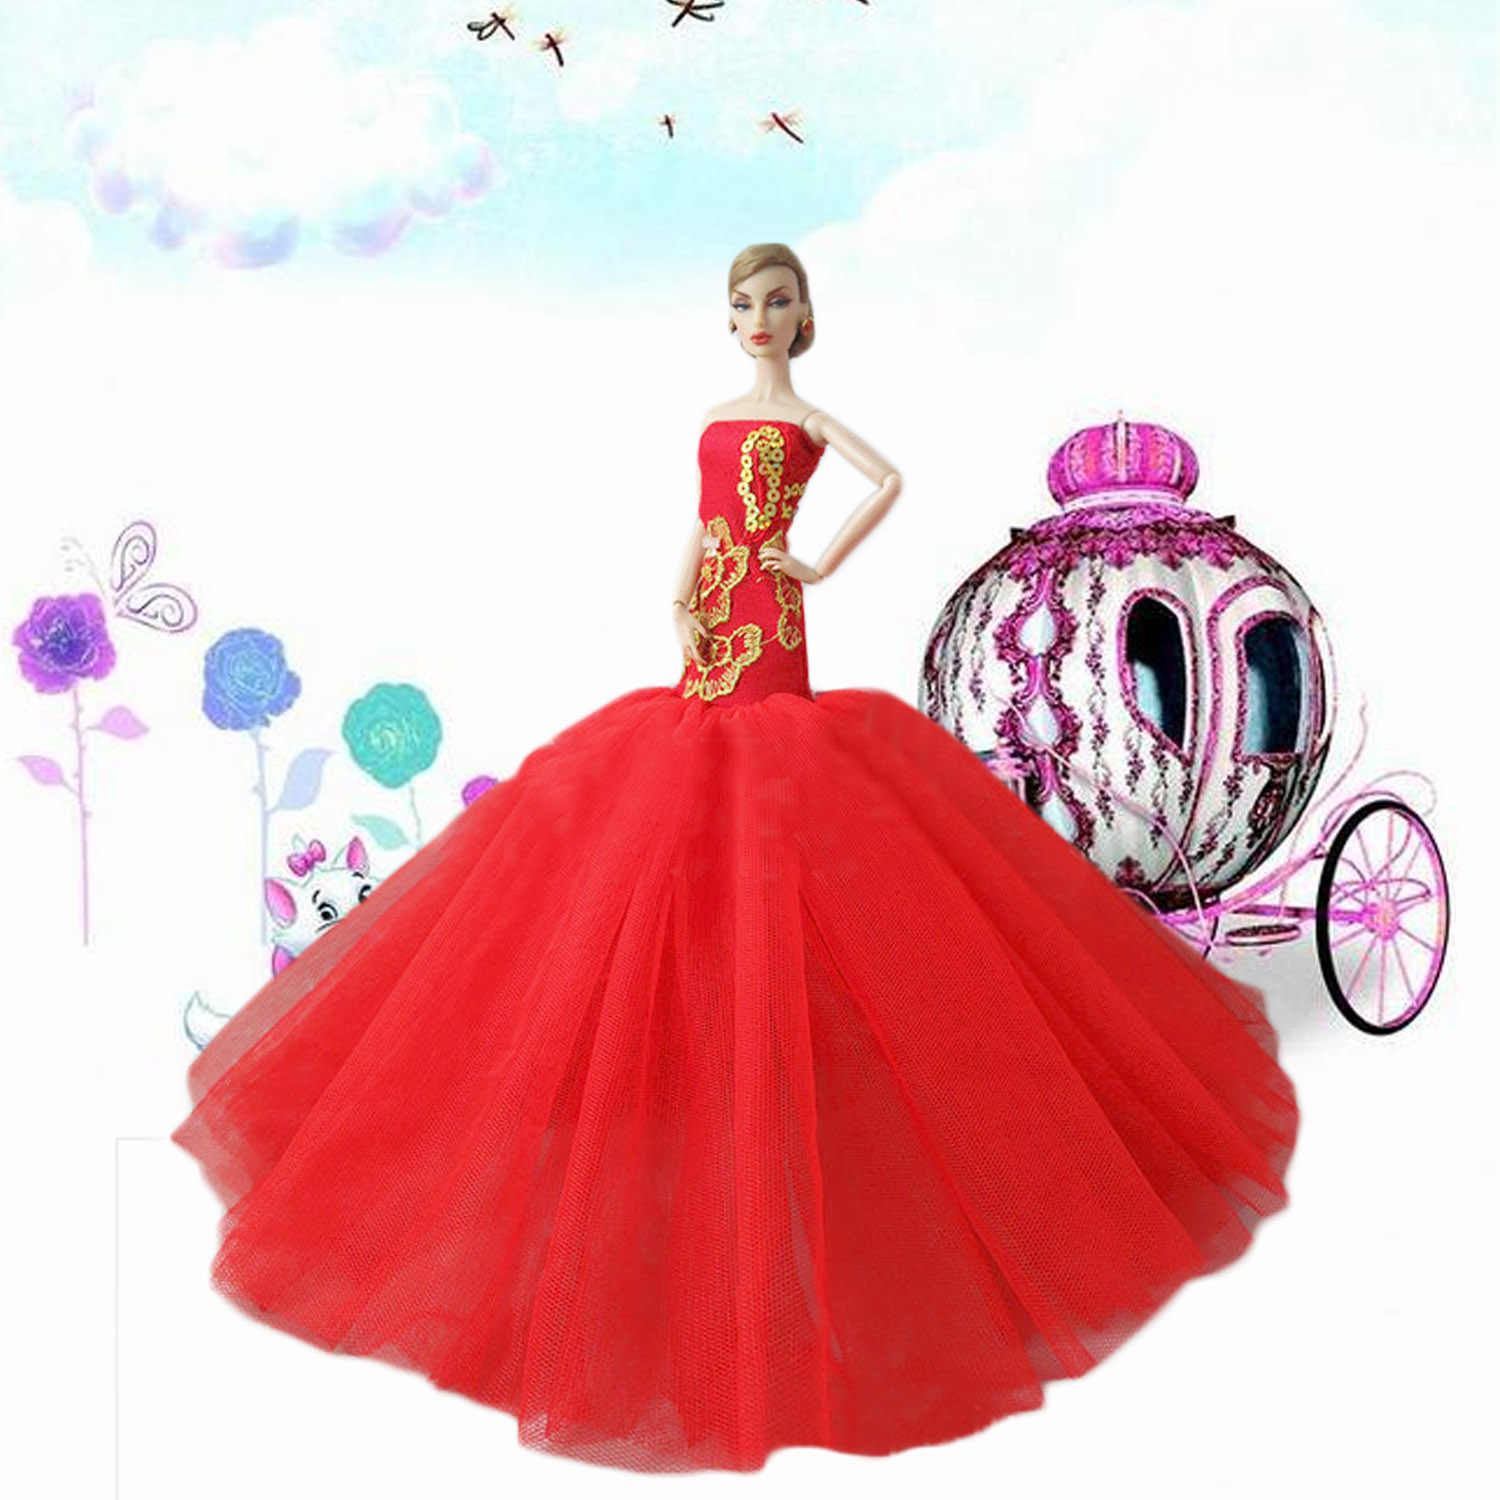 Besegad Doll Red Lace Sequin Long Tail Bridal Wedding Dress Princess  Fishtail Dresses Evening Gauze Gown 92bdd70fcbd9